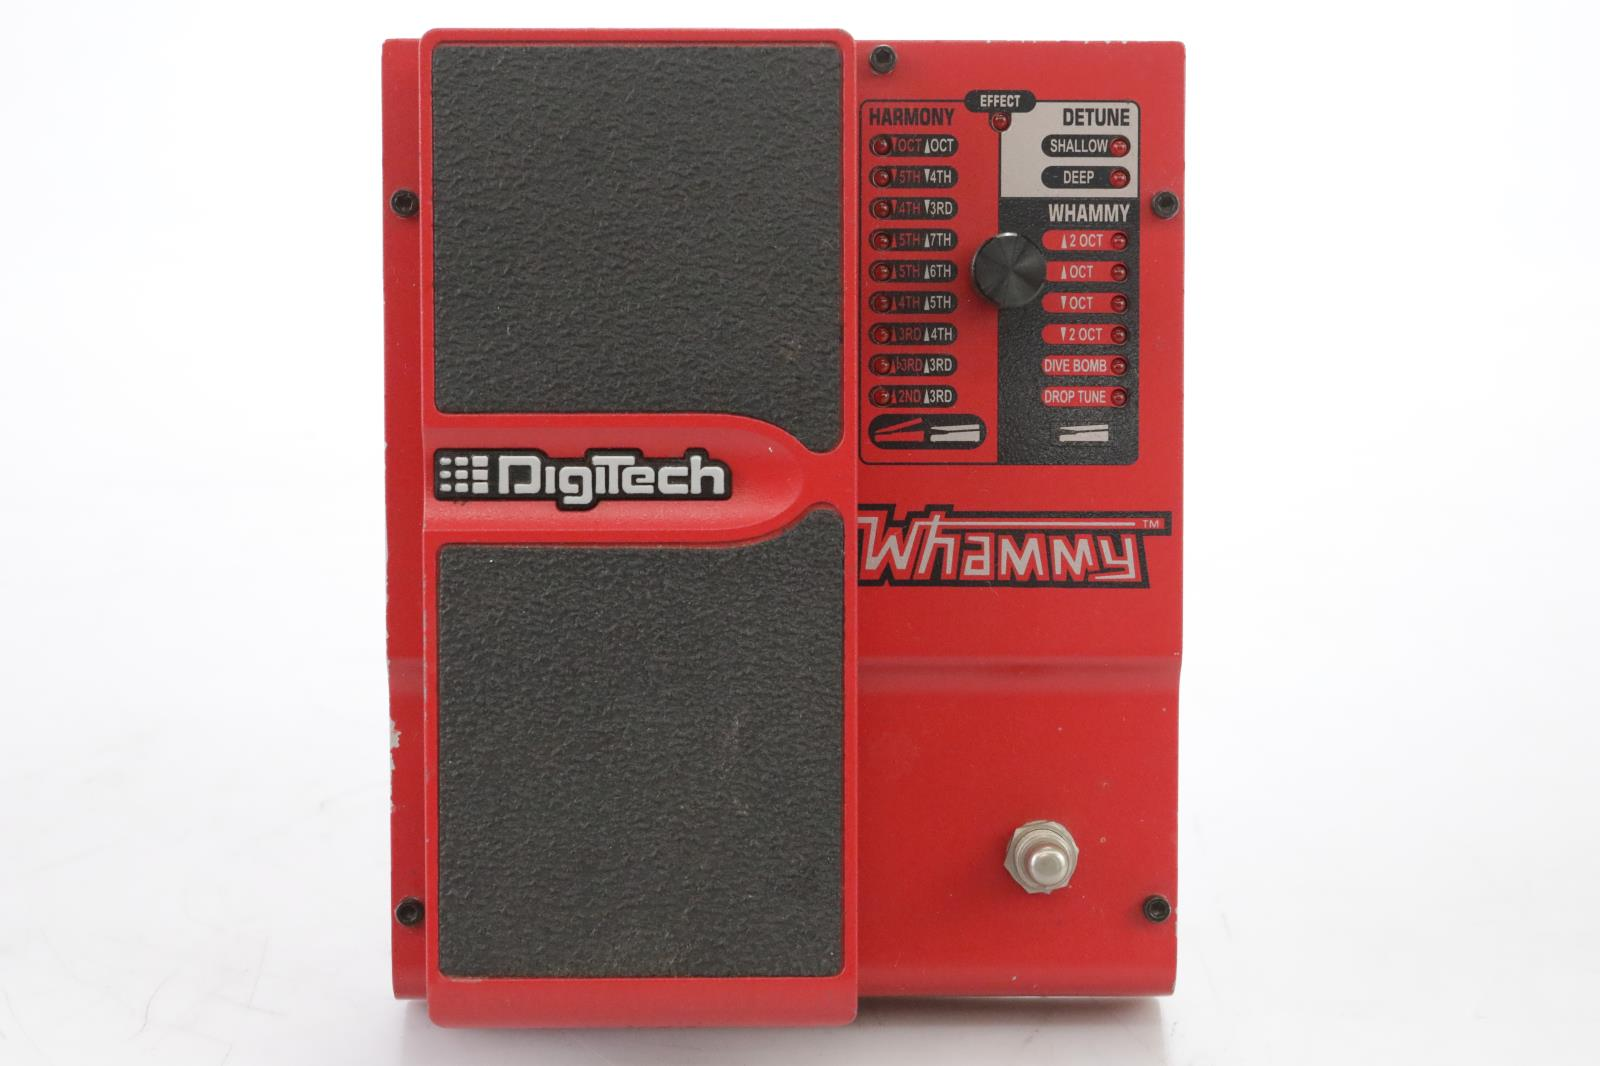 Digitech Whammy 4 Guitar Effect Pedal Owned & Signed Page Hamilton Helmet #44960